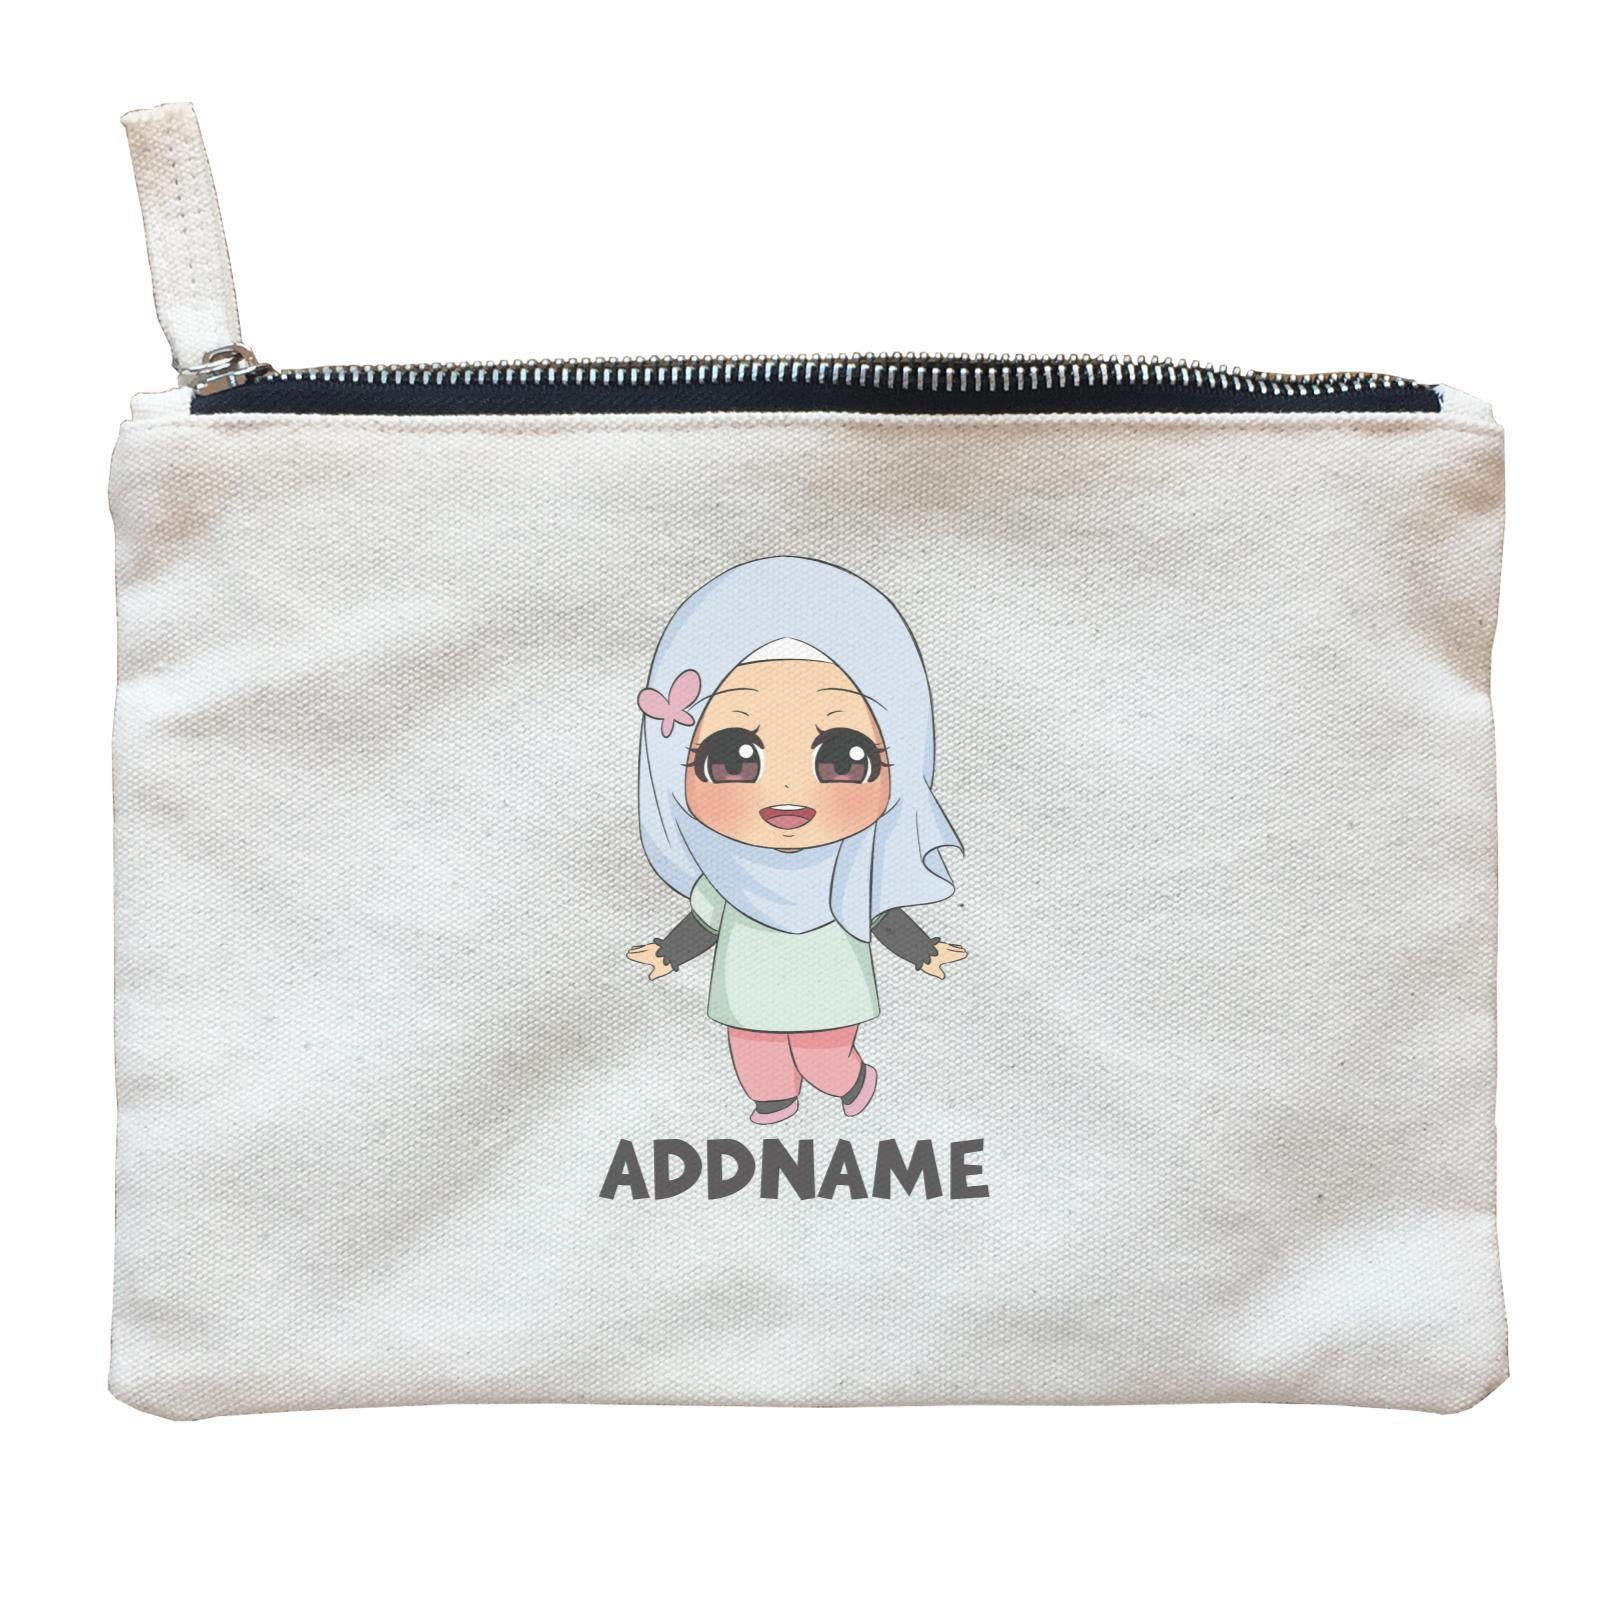 Children's Day Gift Series Little Malay Girl Addname  Zipper Pouch